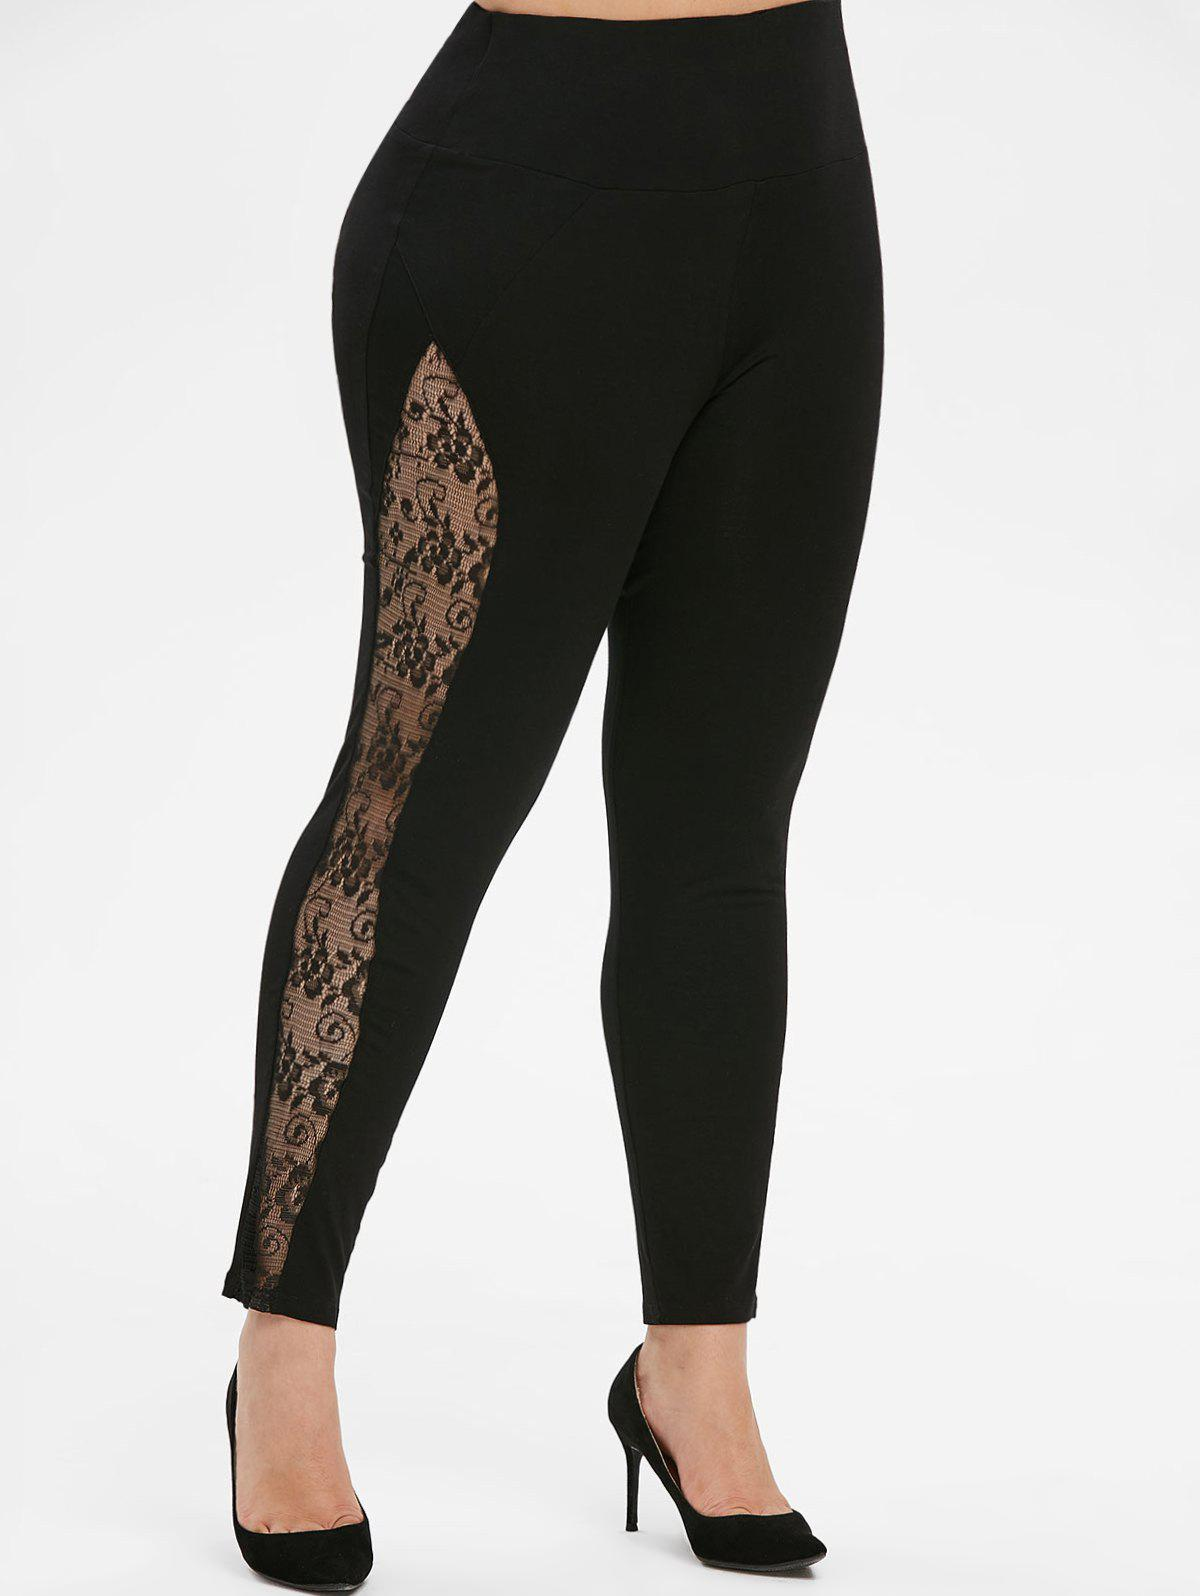 Pull On Lace Panel High Waisted Plus Size Leggings - BLACK 2X